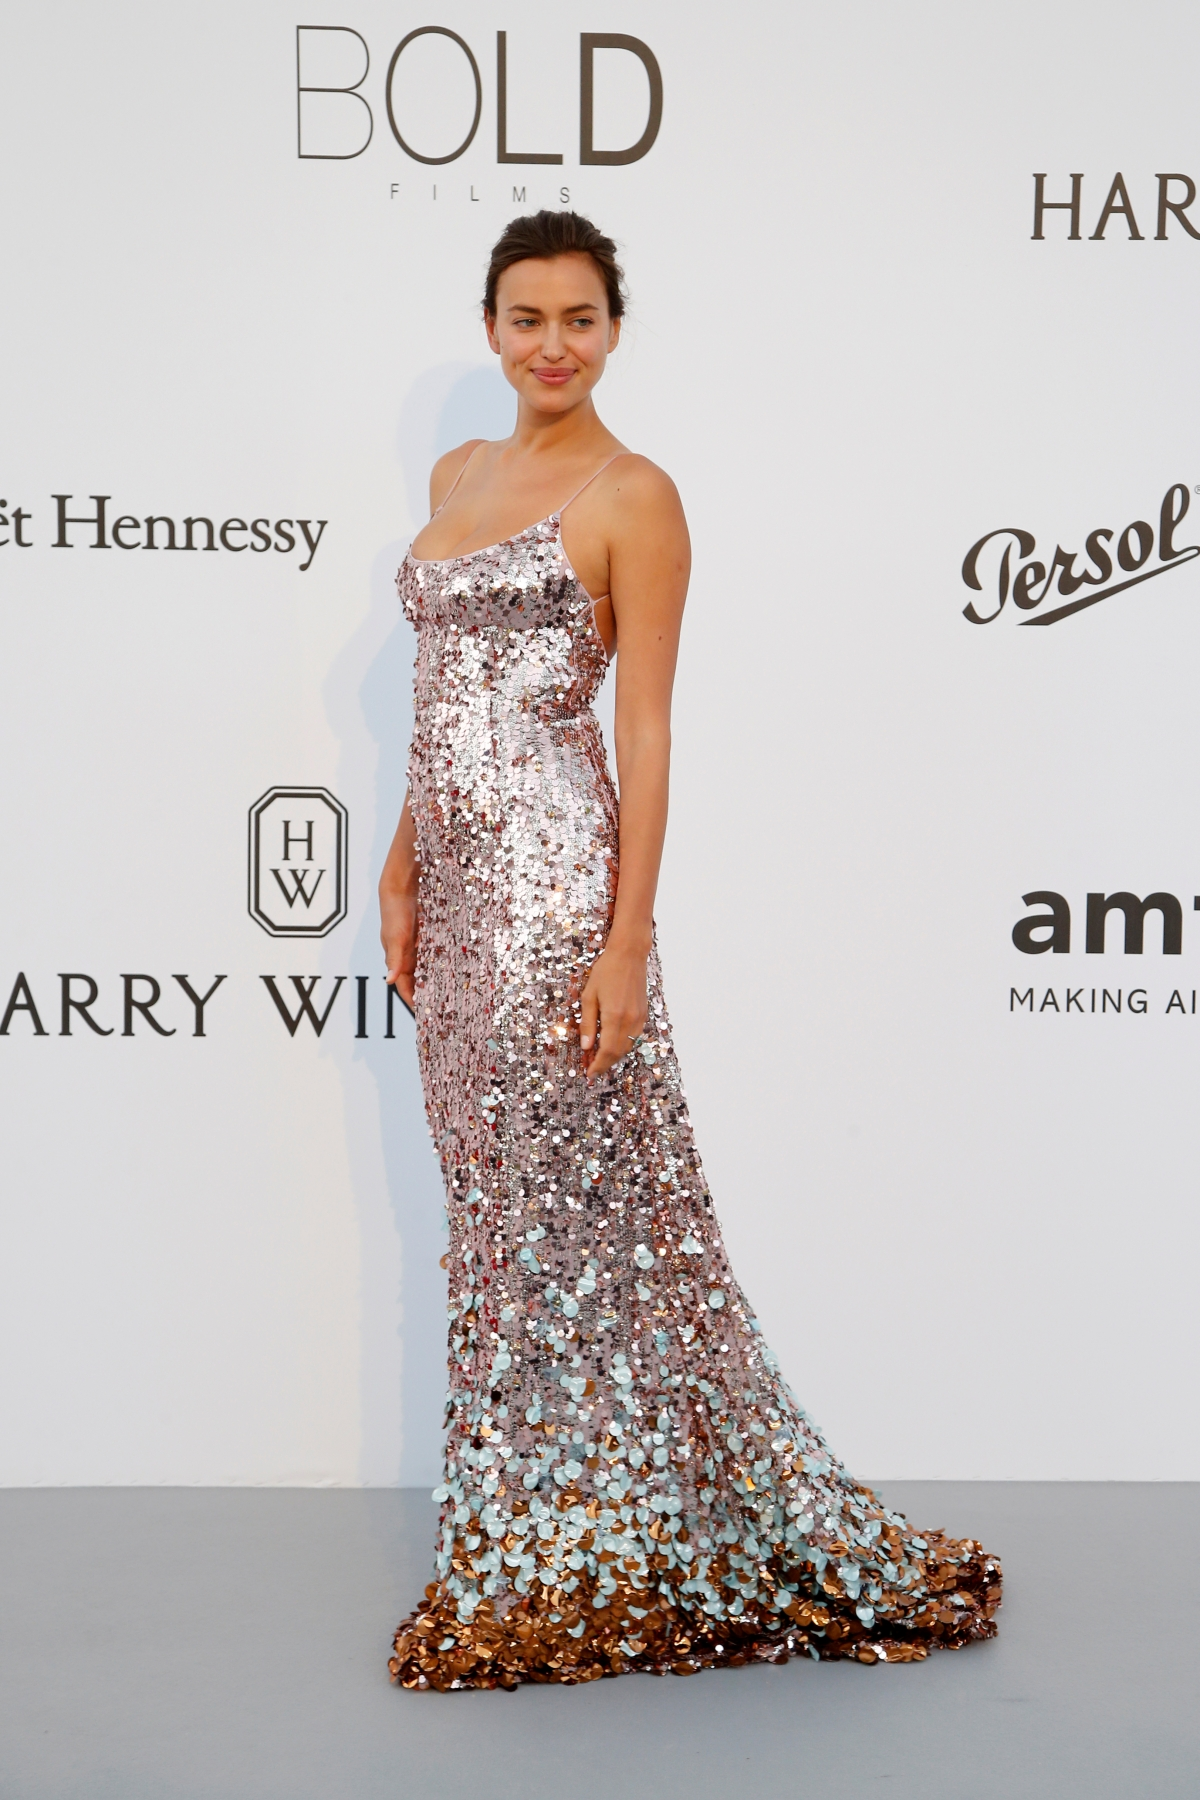 Irina Shayk puts on a busty show in a dazzling metallic gown [PHOTOS ...